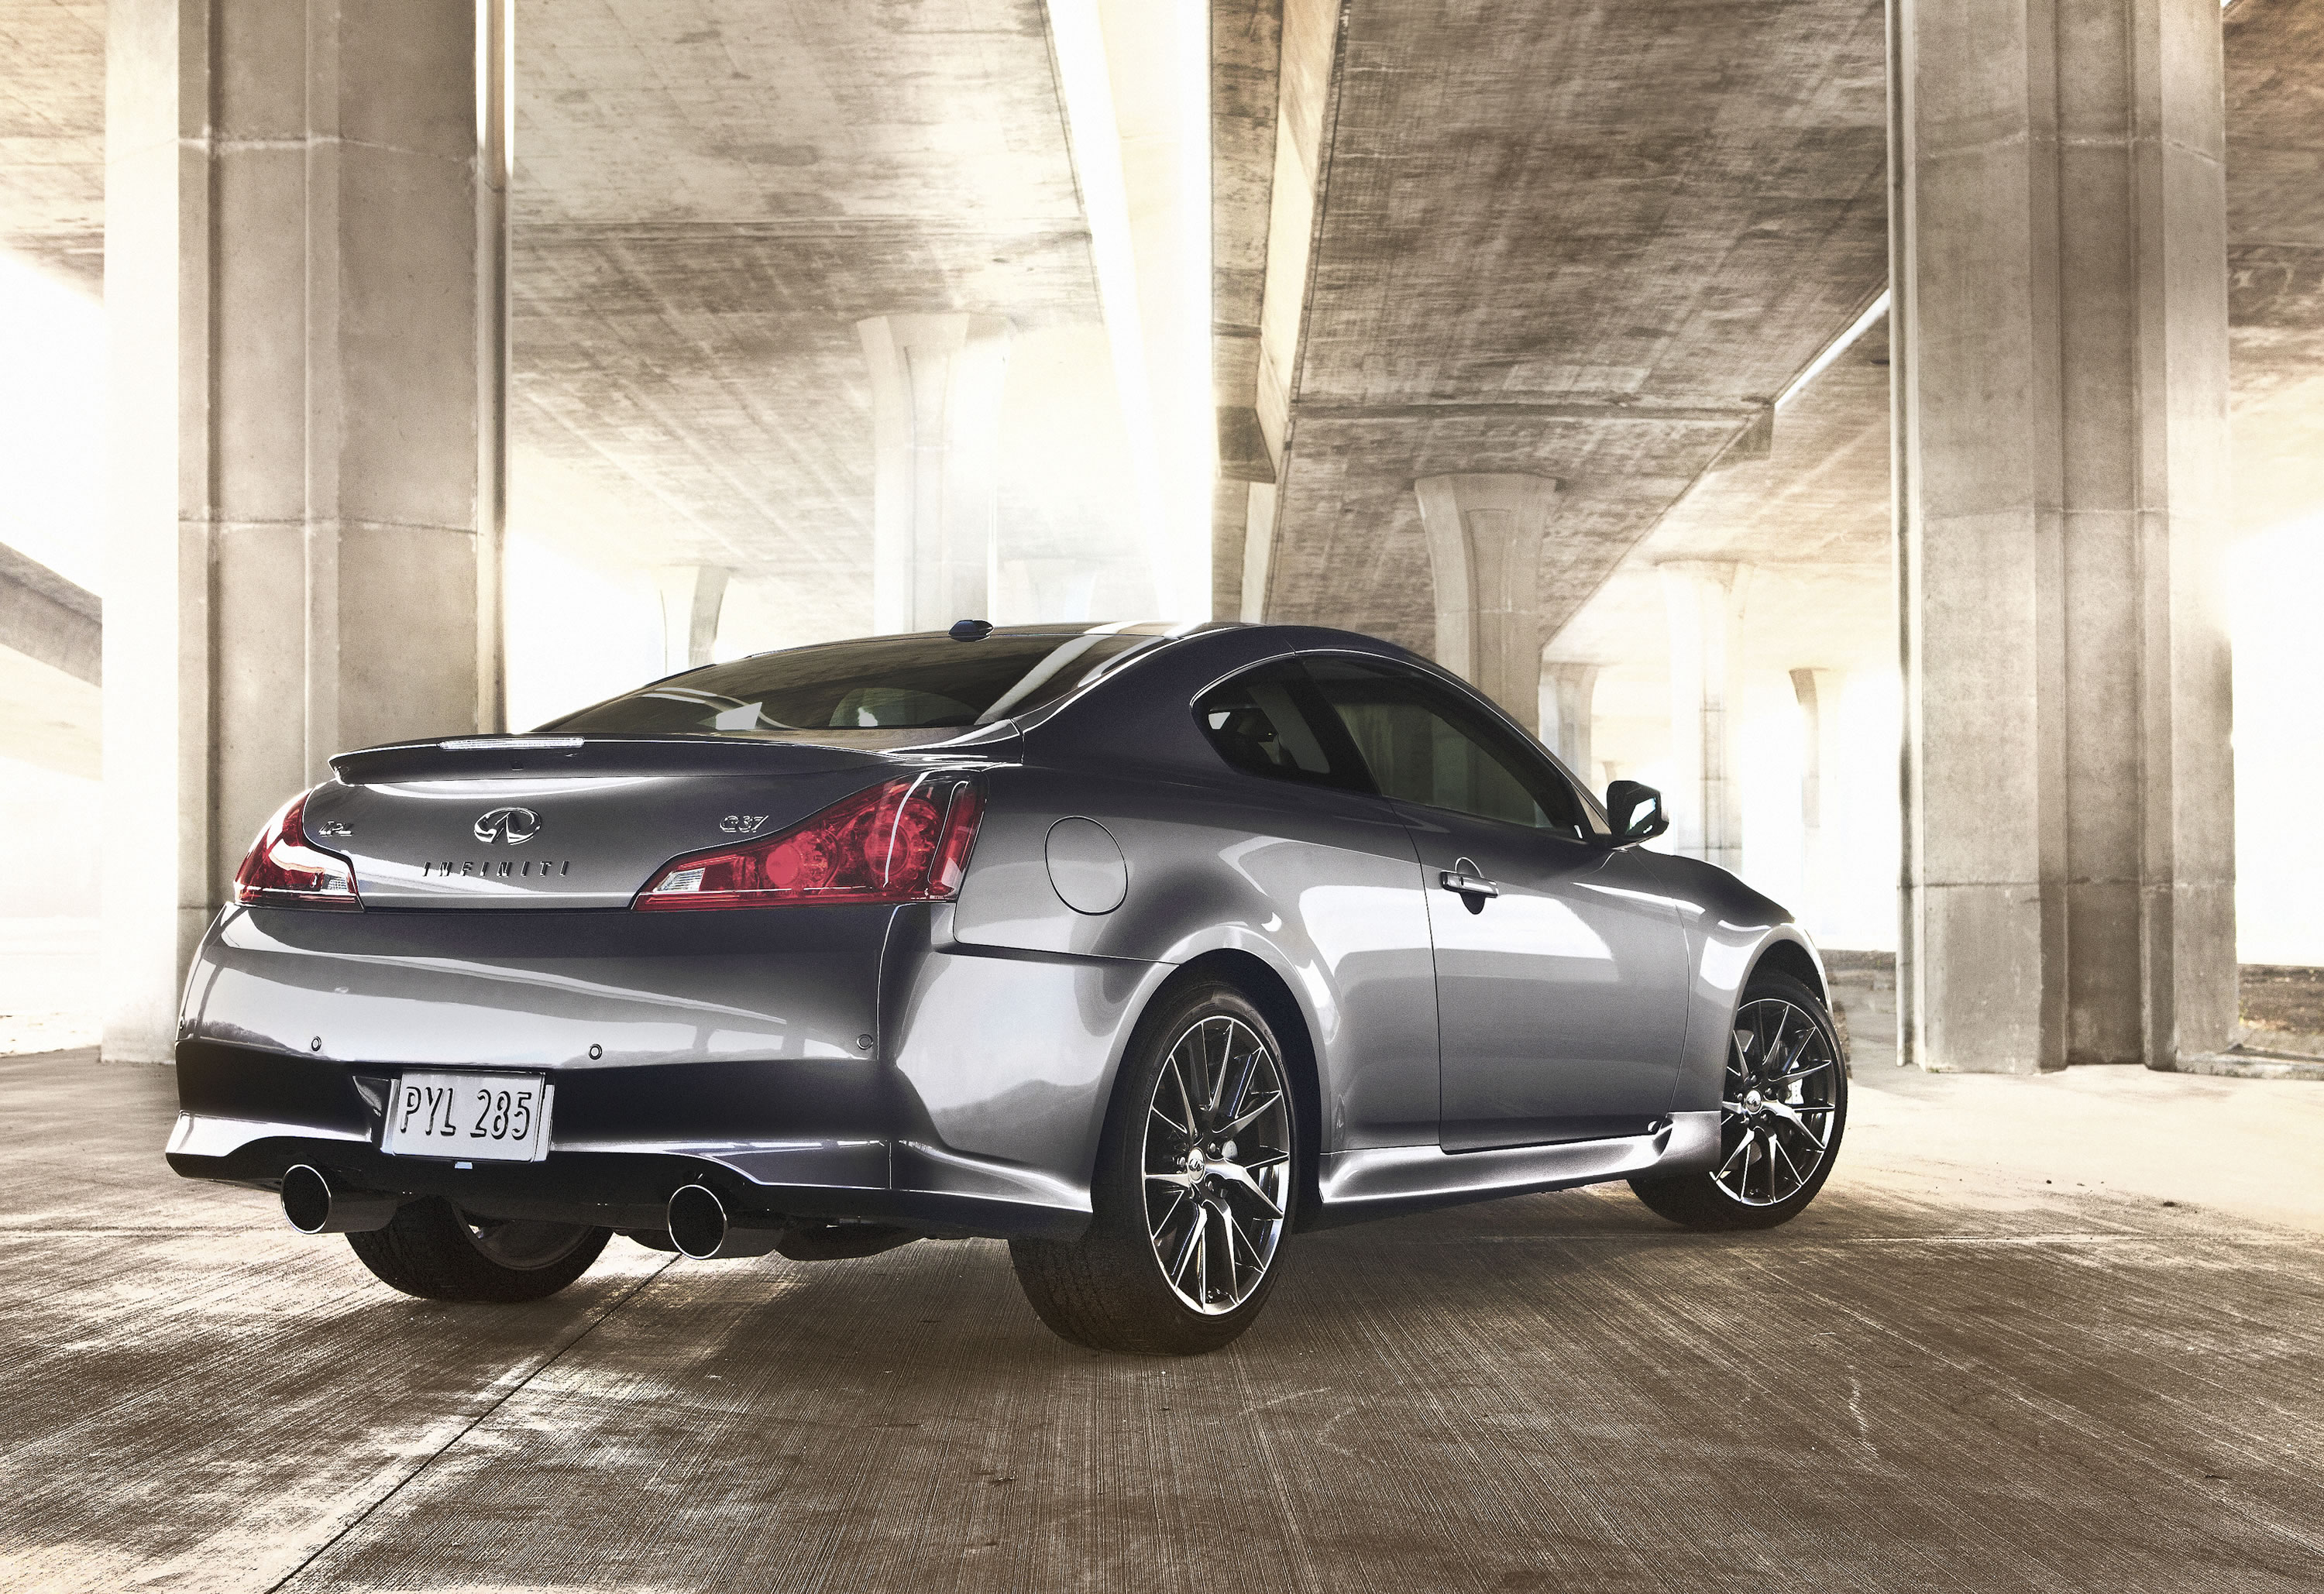 2013 Infiniti IPL G Coupe s Specs and Review RS